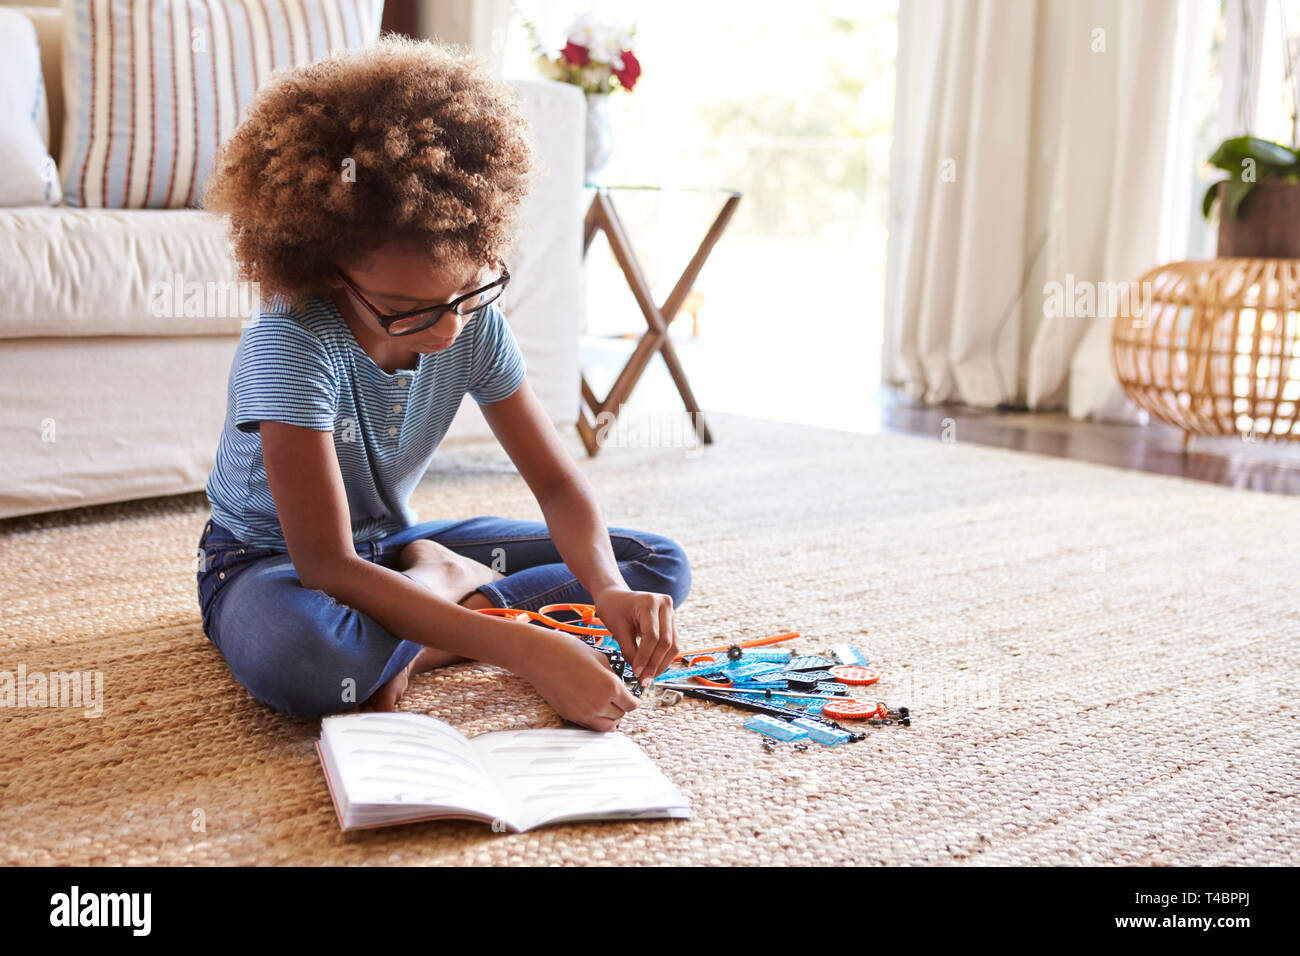 Pre-teen girl sitting on the floor in the living room reading instructions and constructing a model, close up - Stock Image